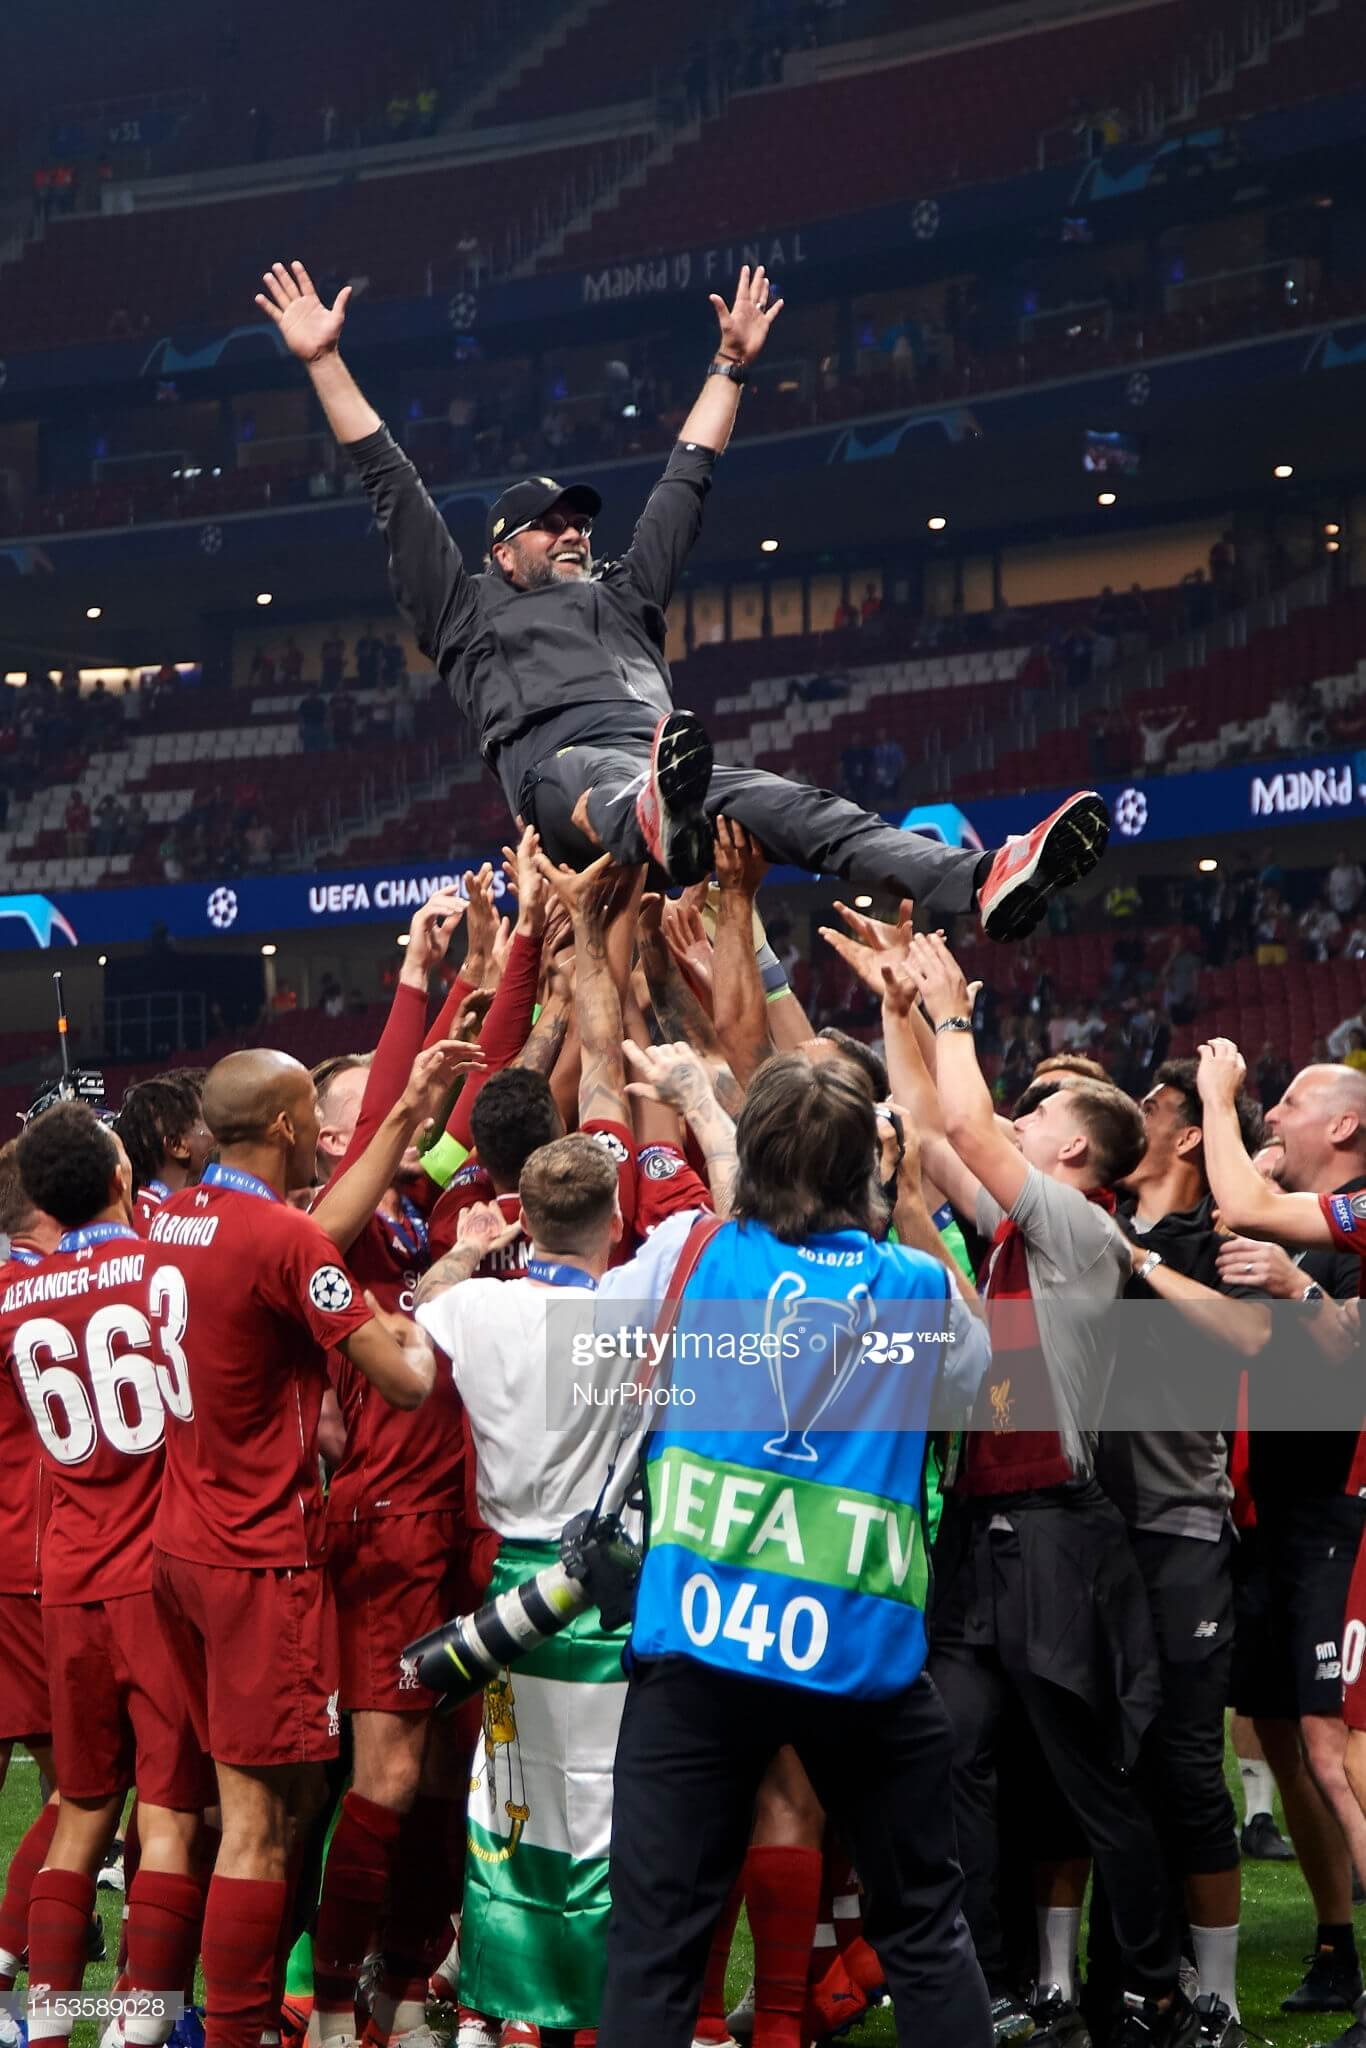 Liverpool Team Signed Champions League Final Shirt & Winners Medal Display Madrid 2019 - Golden ...